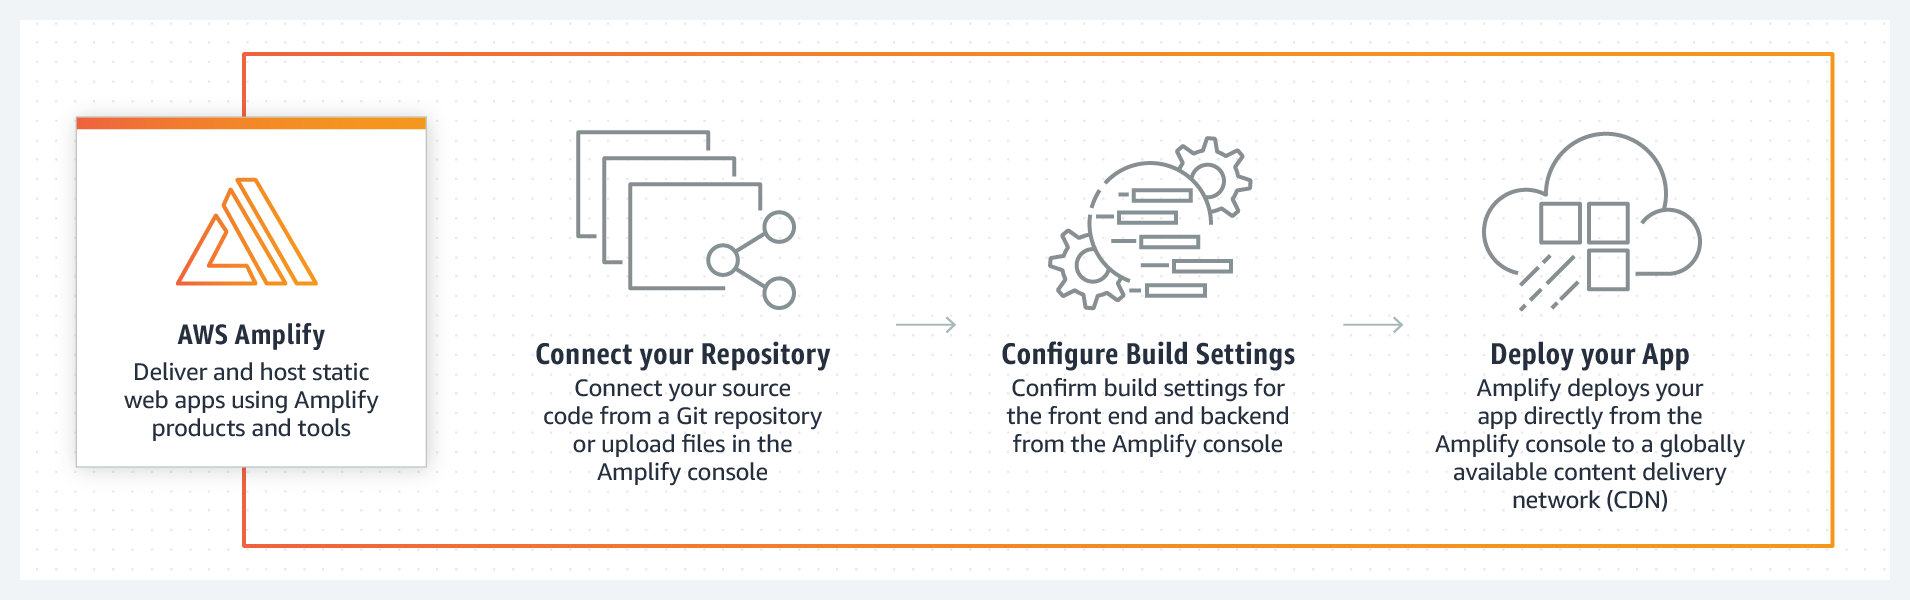 AWS Amplify - Deliver